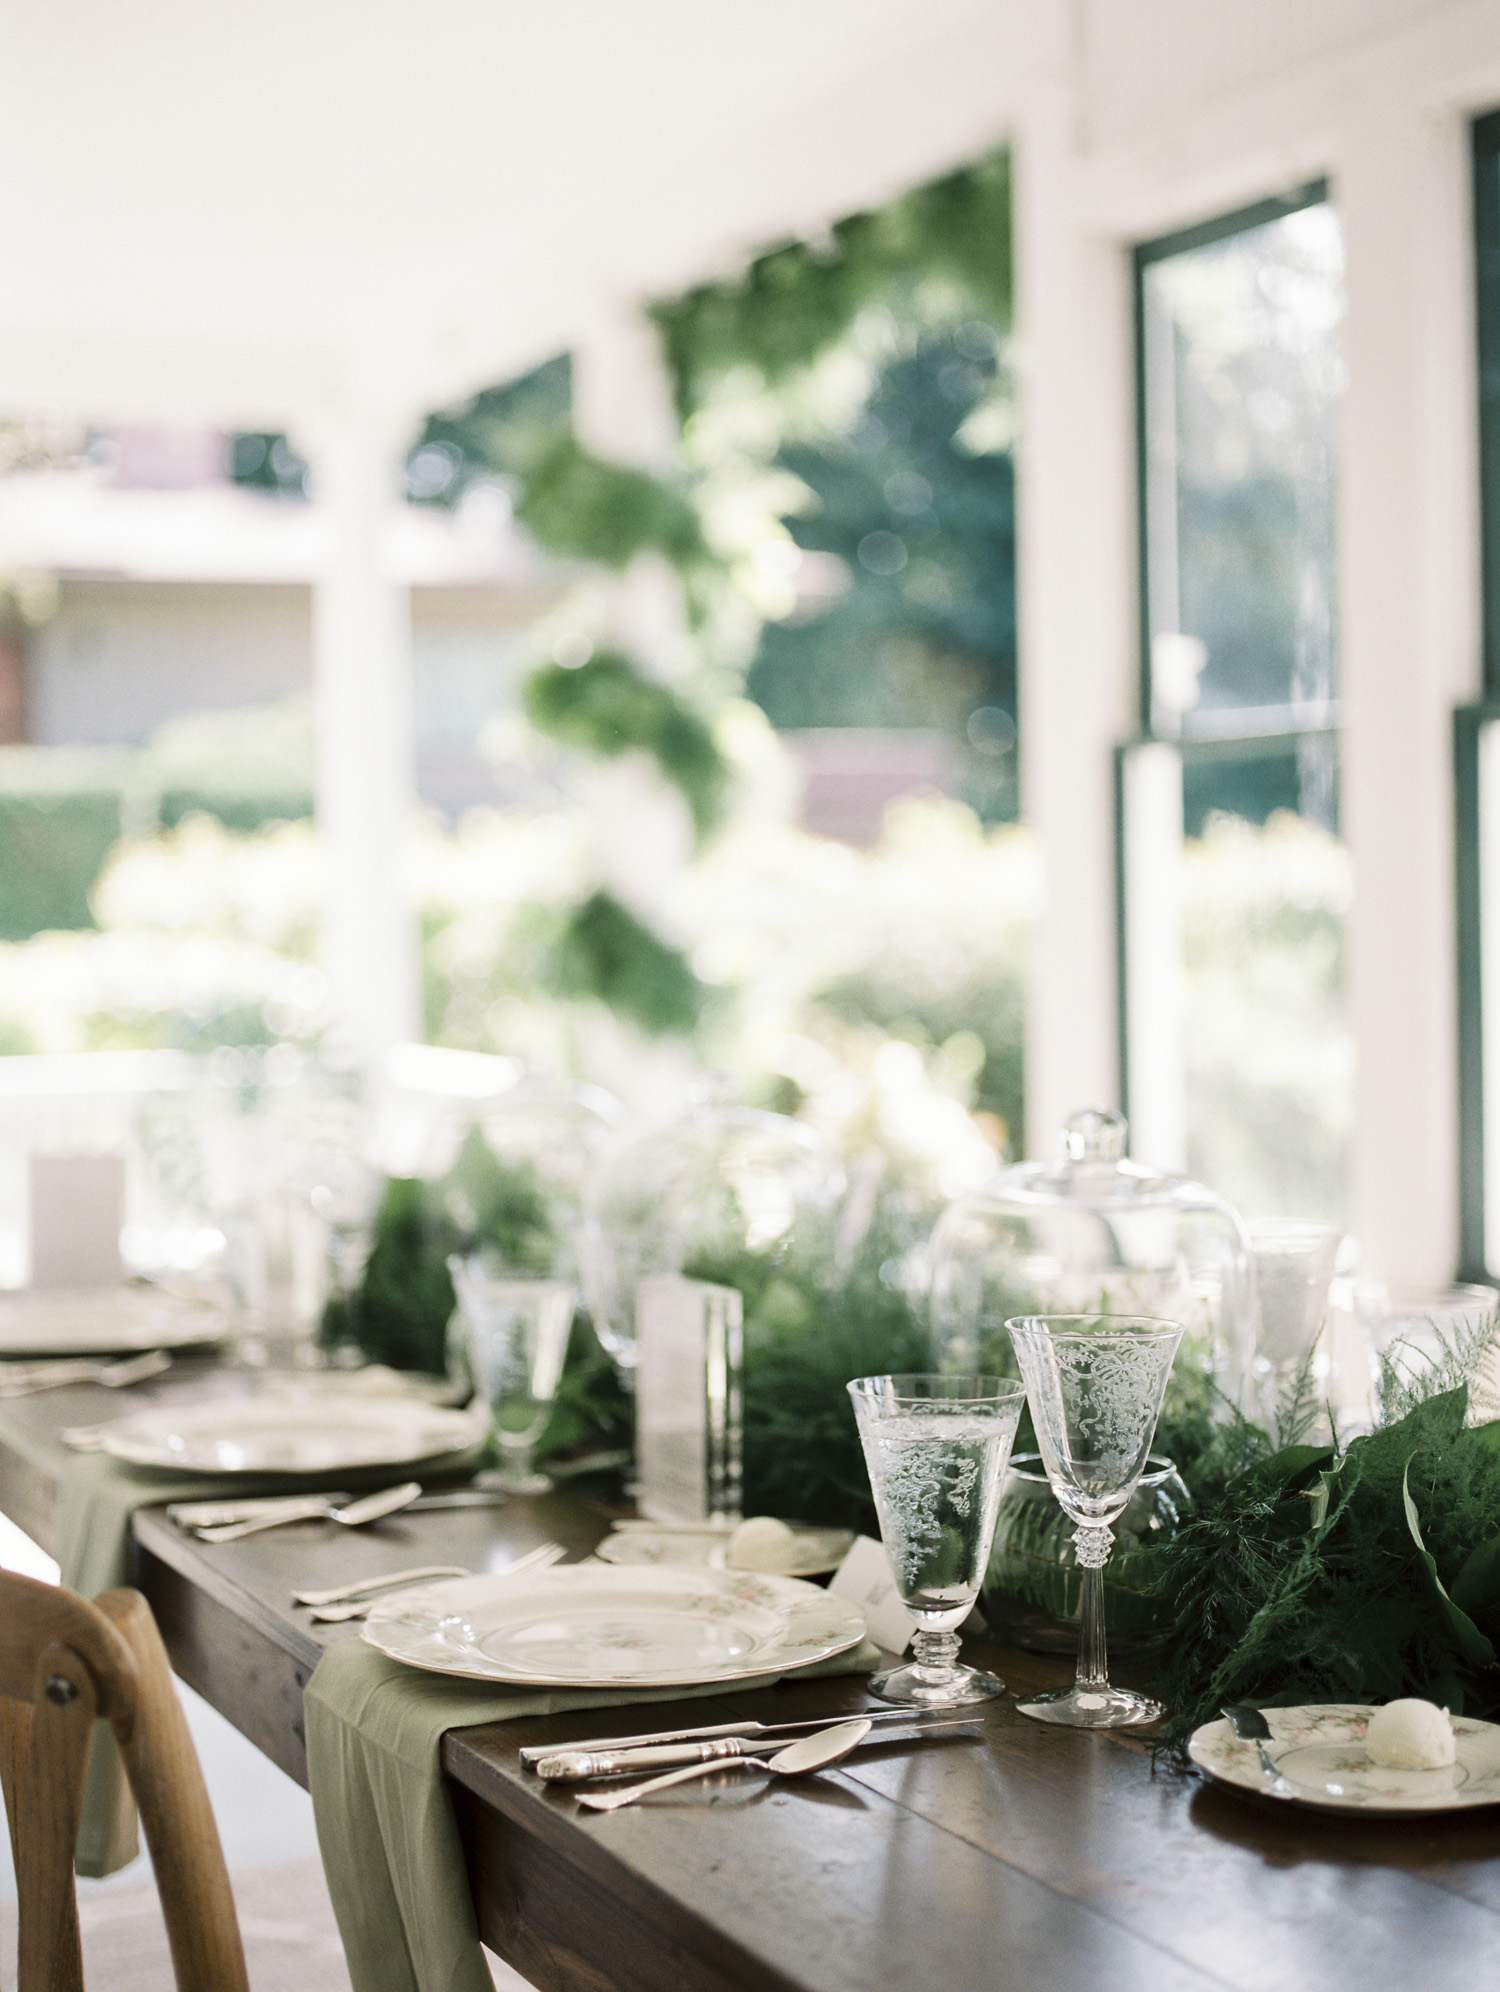 An intimate wedding dinner table with greenery and vintage glassware in Petoskey, Michigan